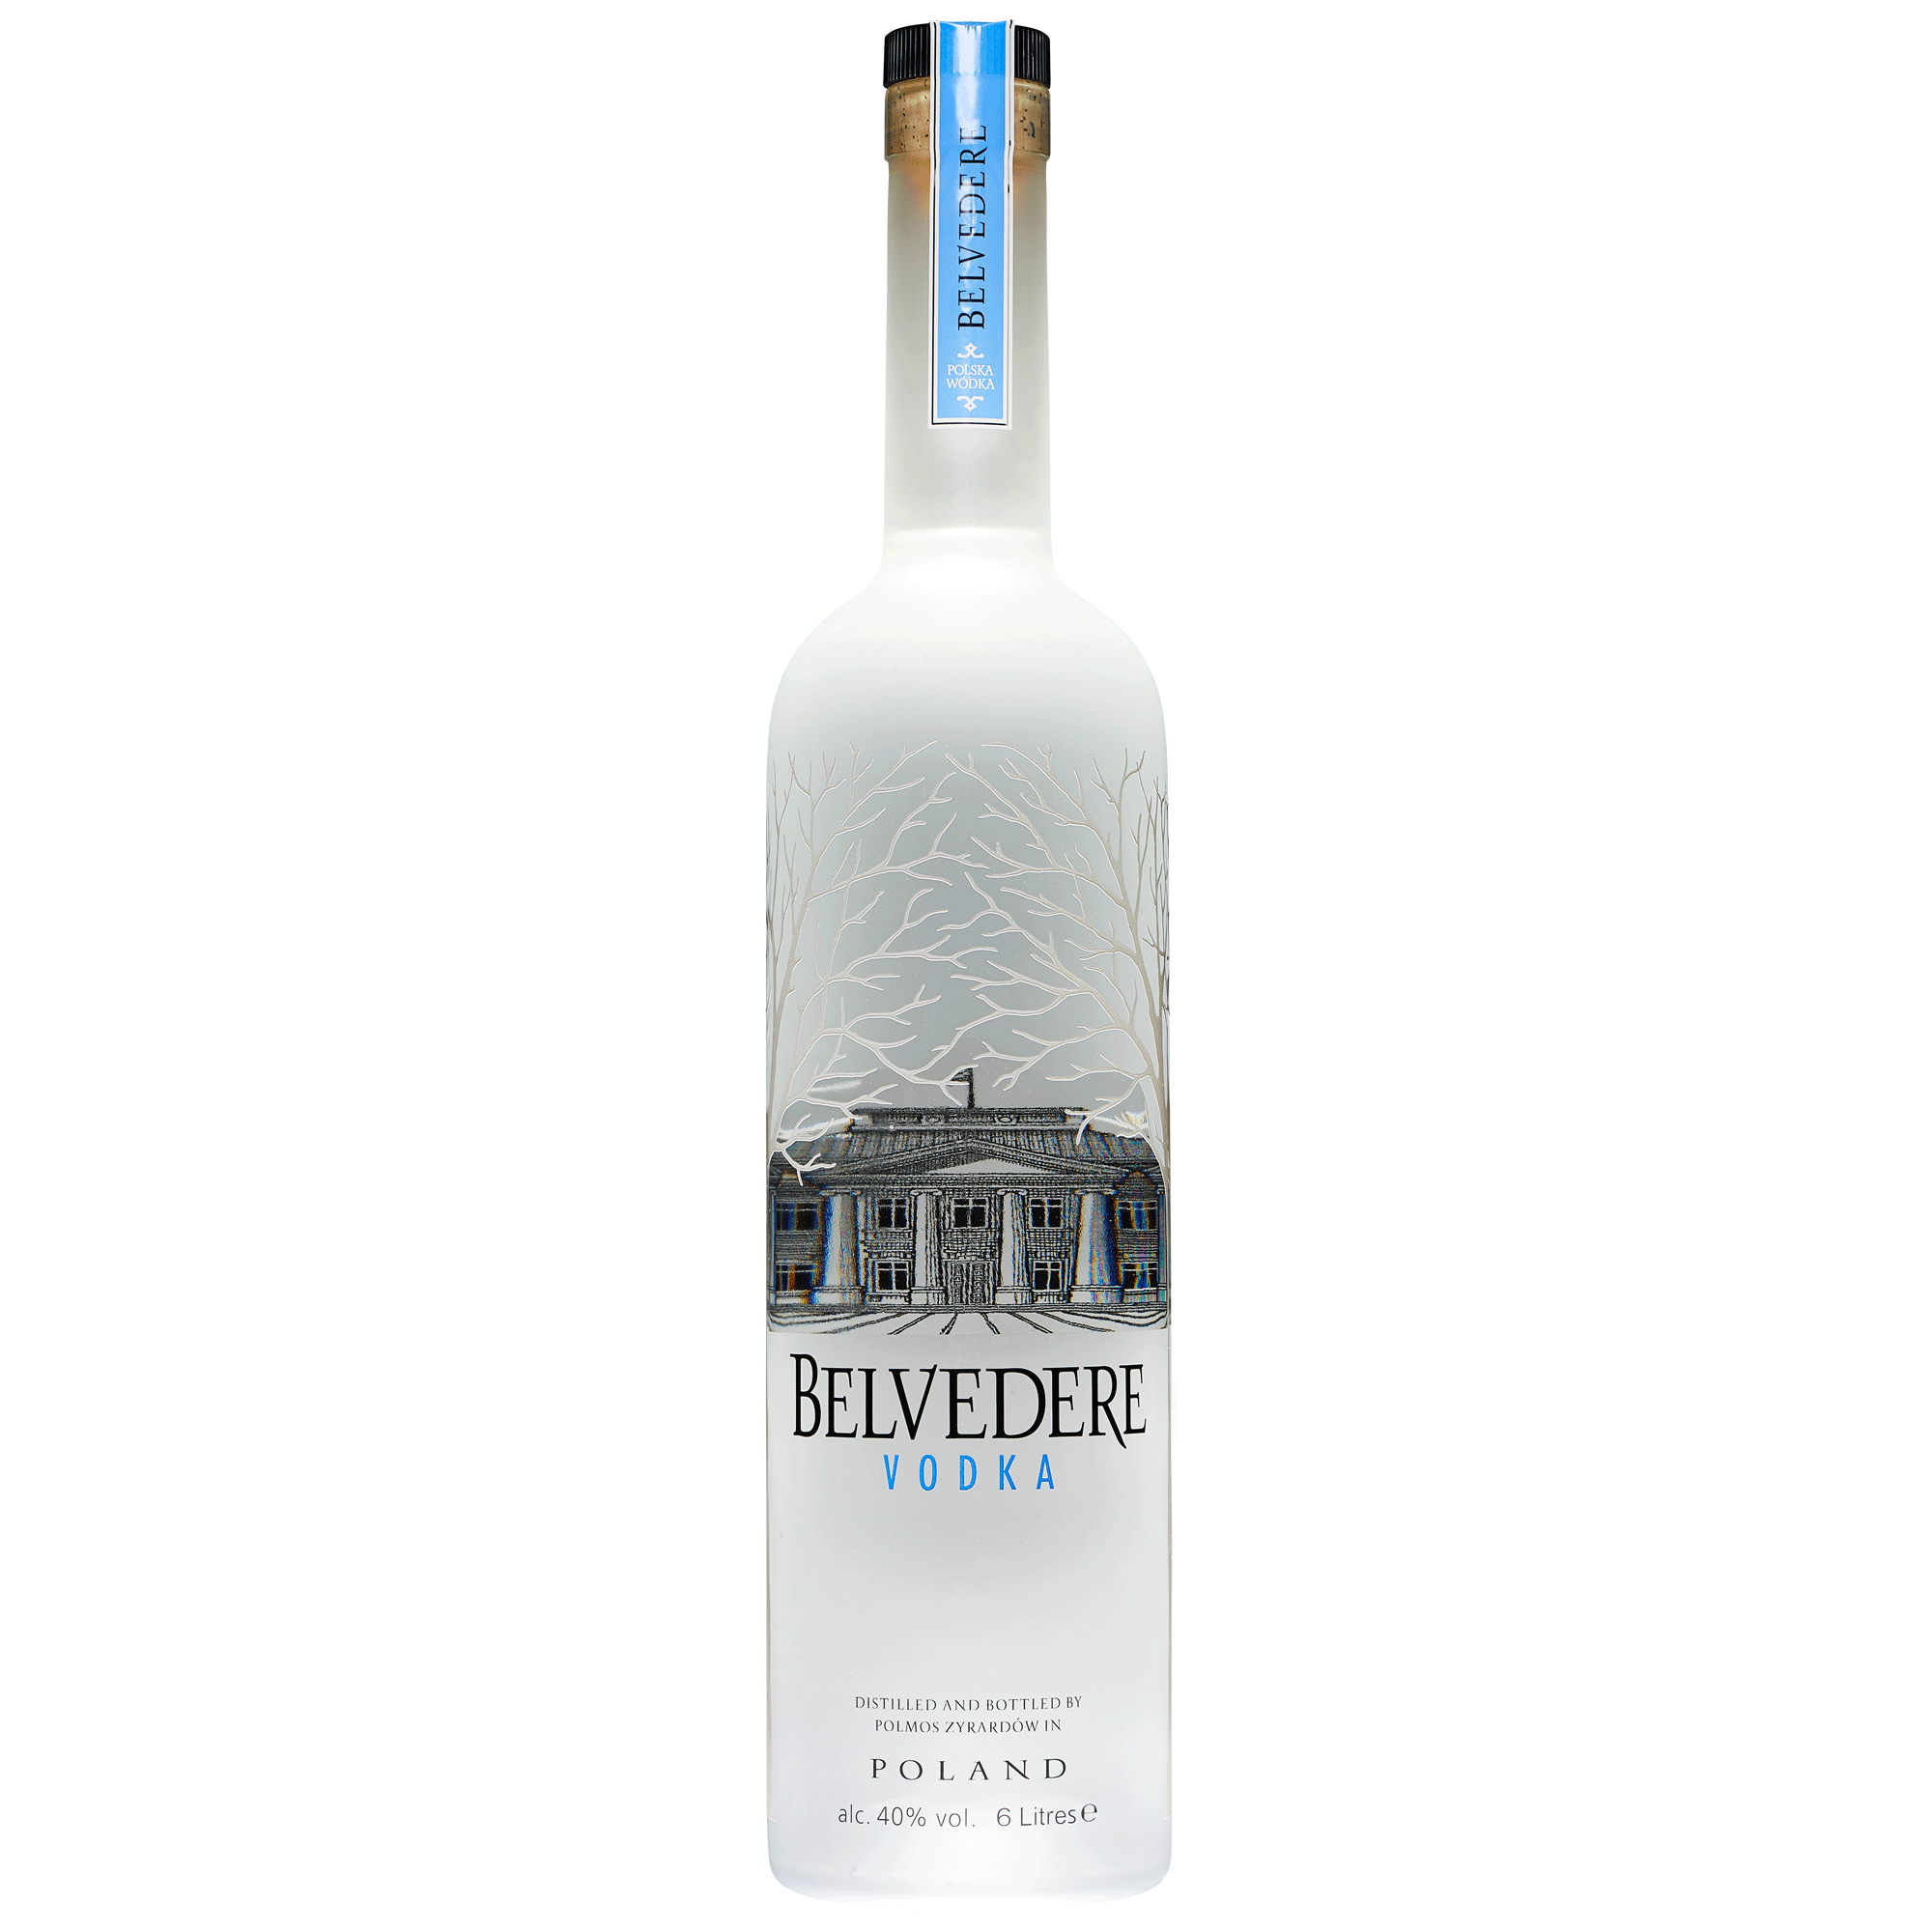 belvedere pure vodka illumination bottle 6 litre bottle butler. Black Bedroom Furniture Sets. Home Design Ideas